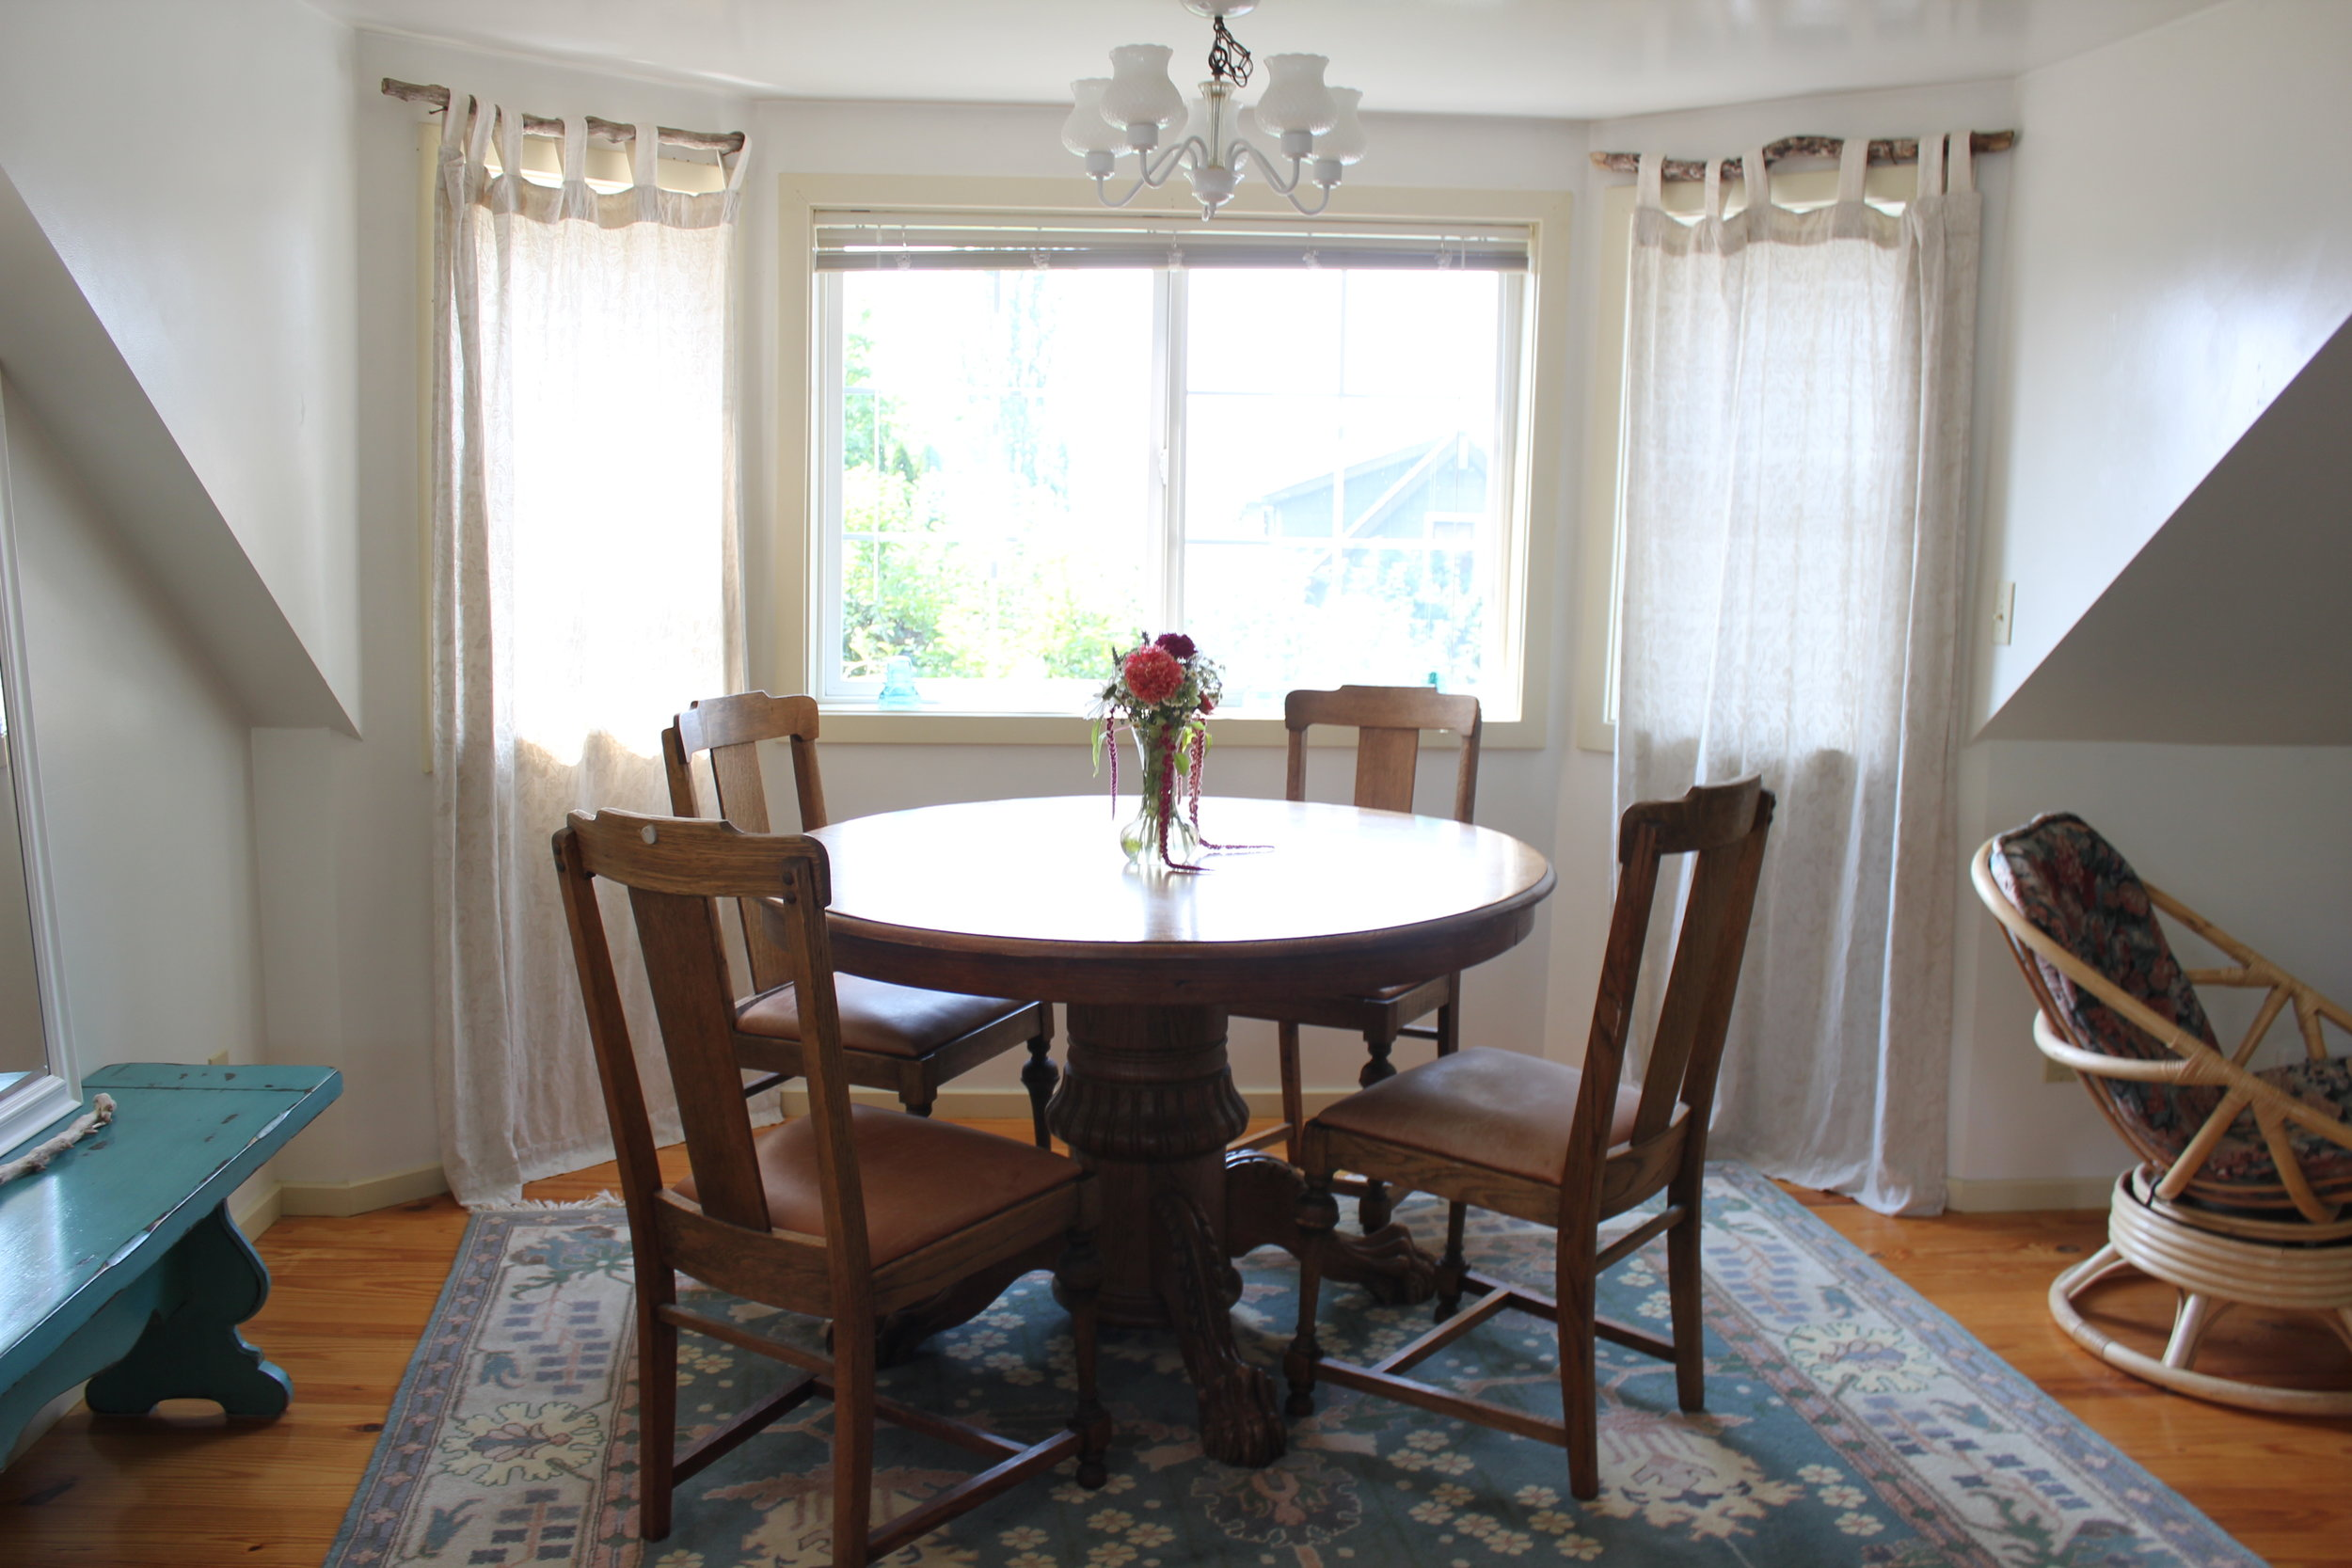 light filled dining room at plum nelli apartment airbnb.JPG